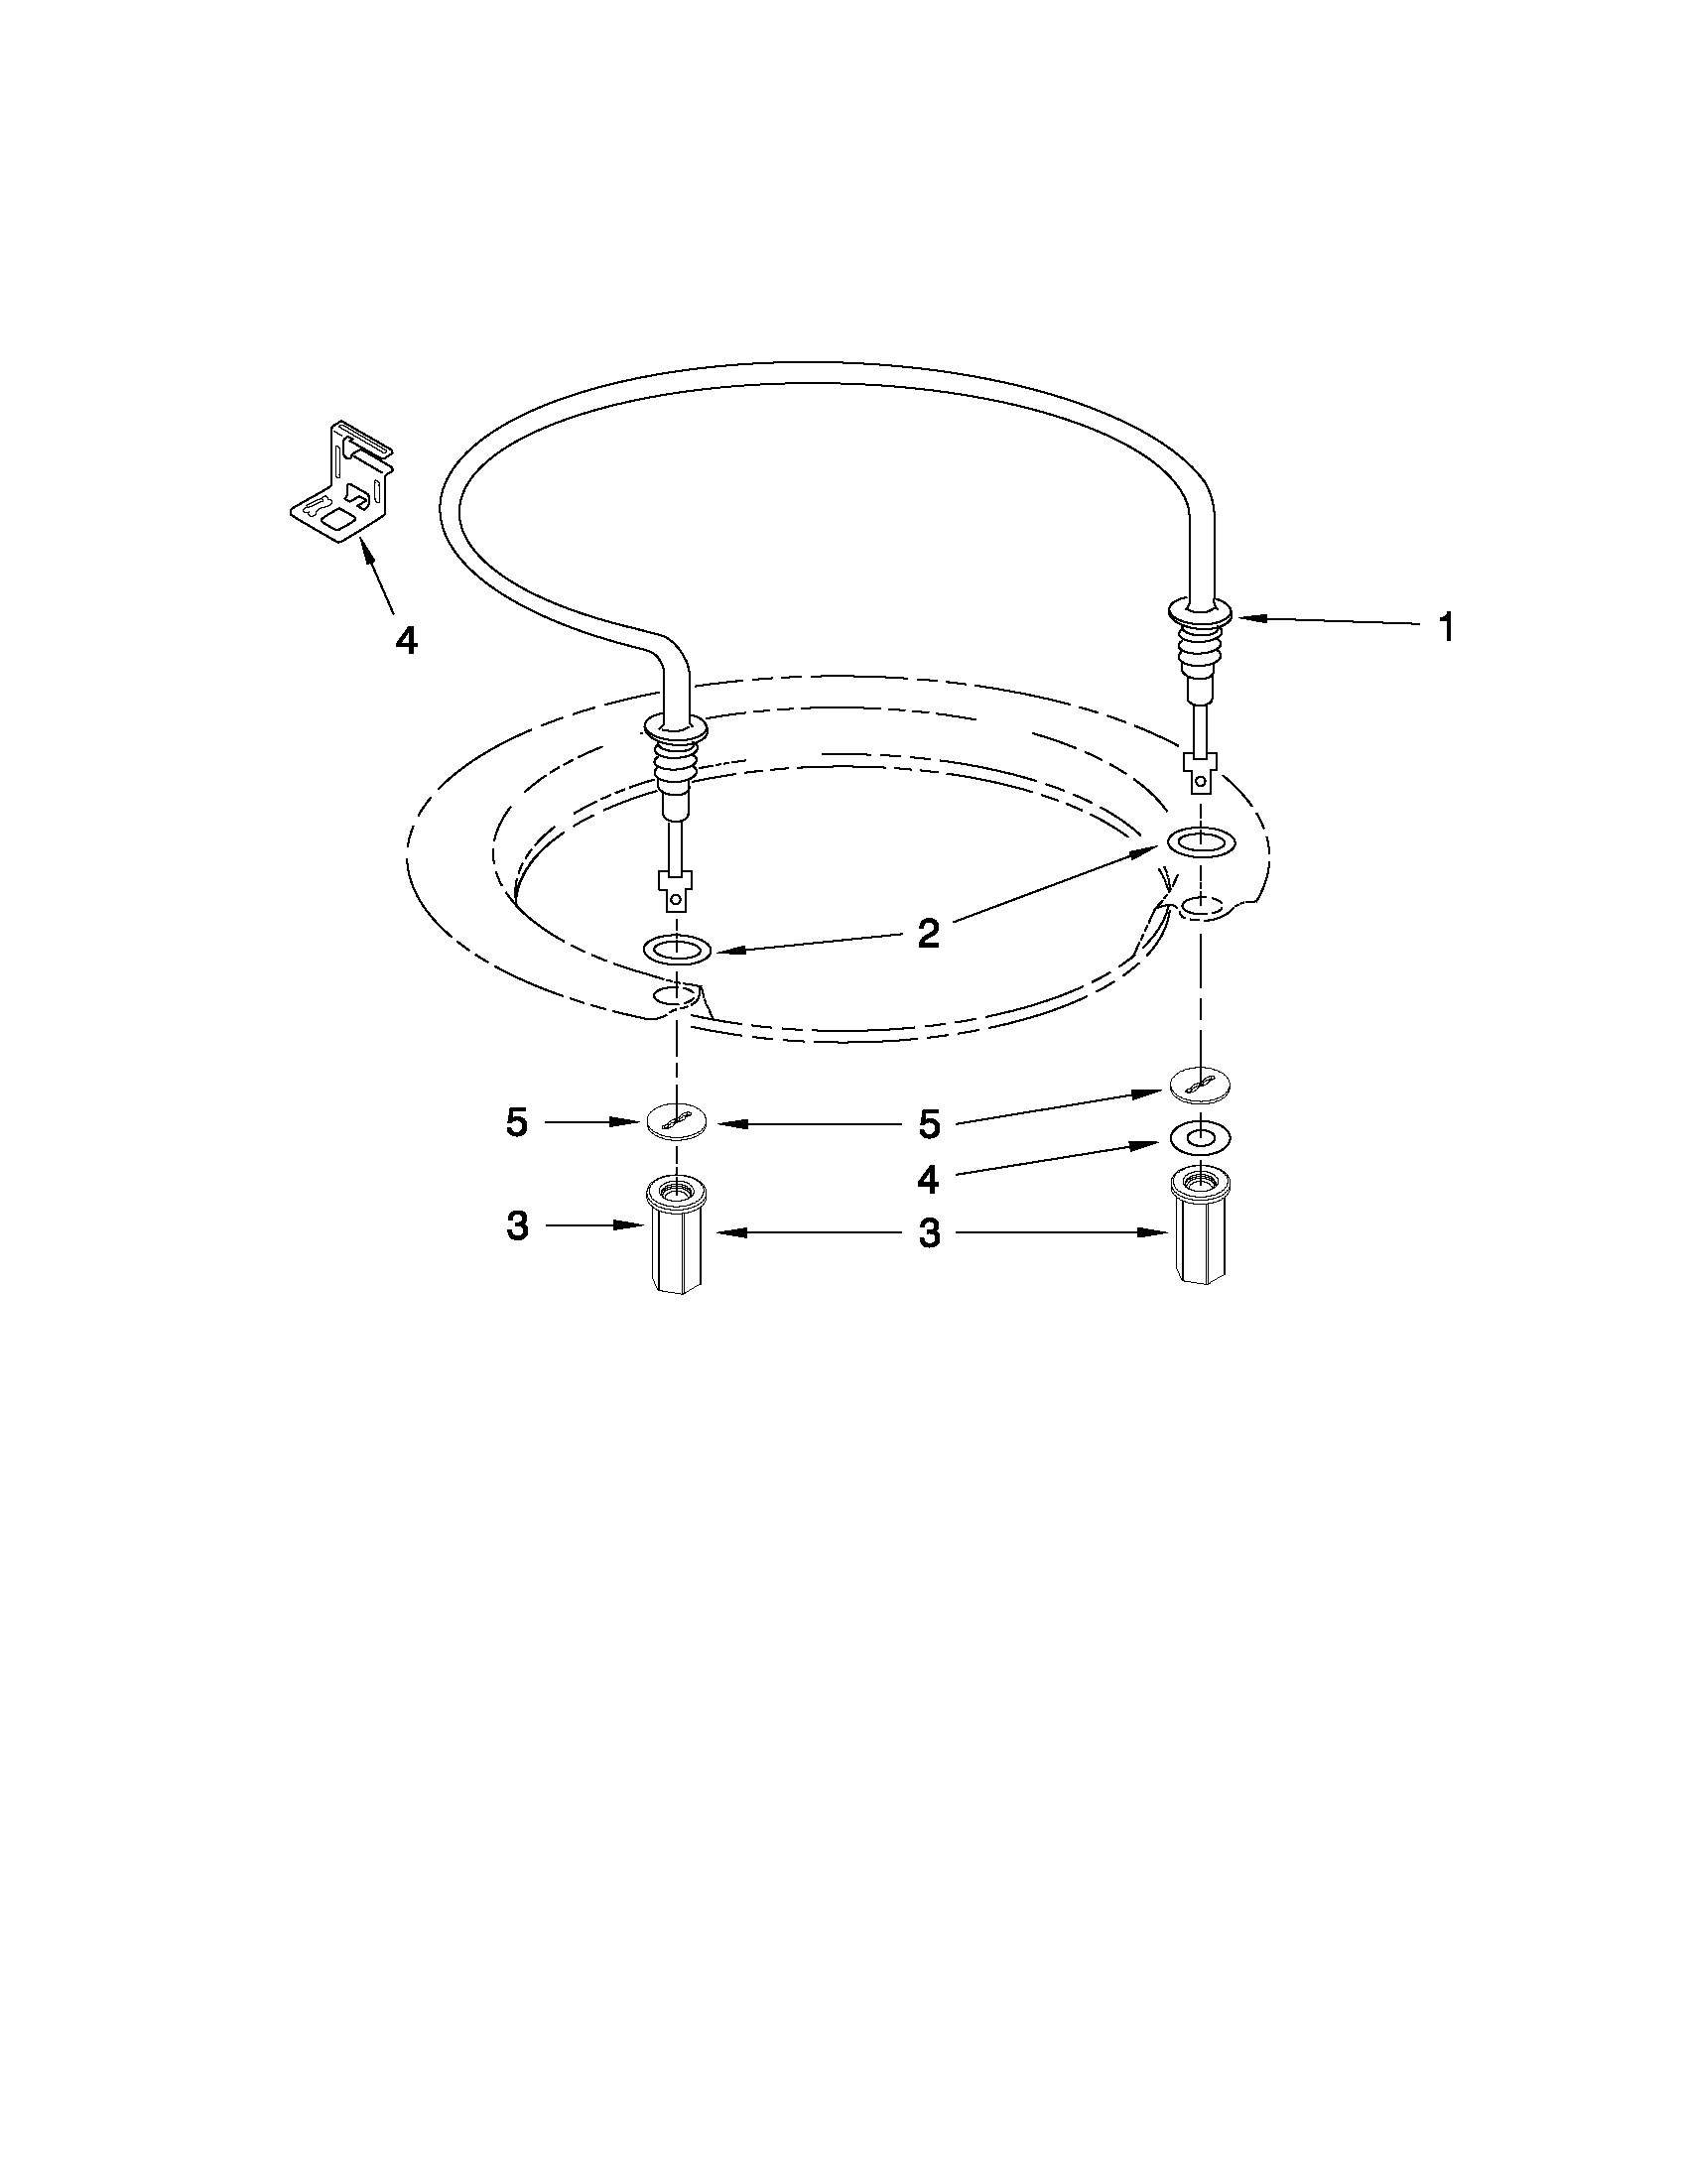 Whirlpool WDF730PAYB1 heater parts diagram